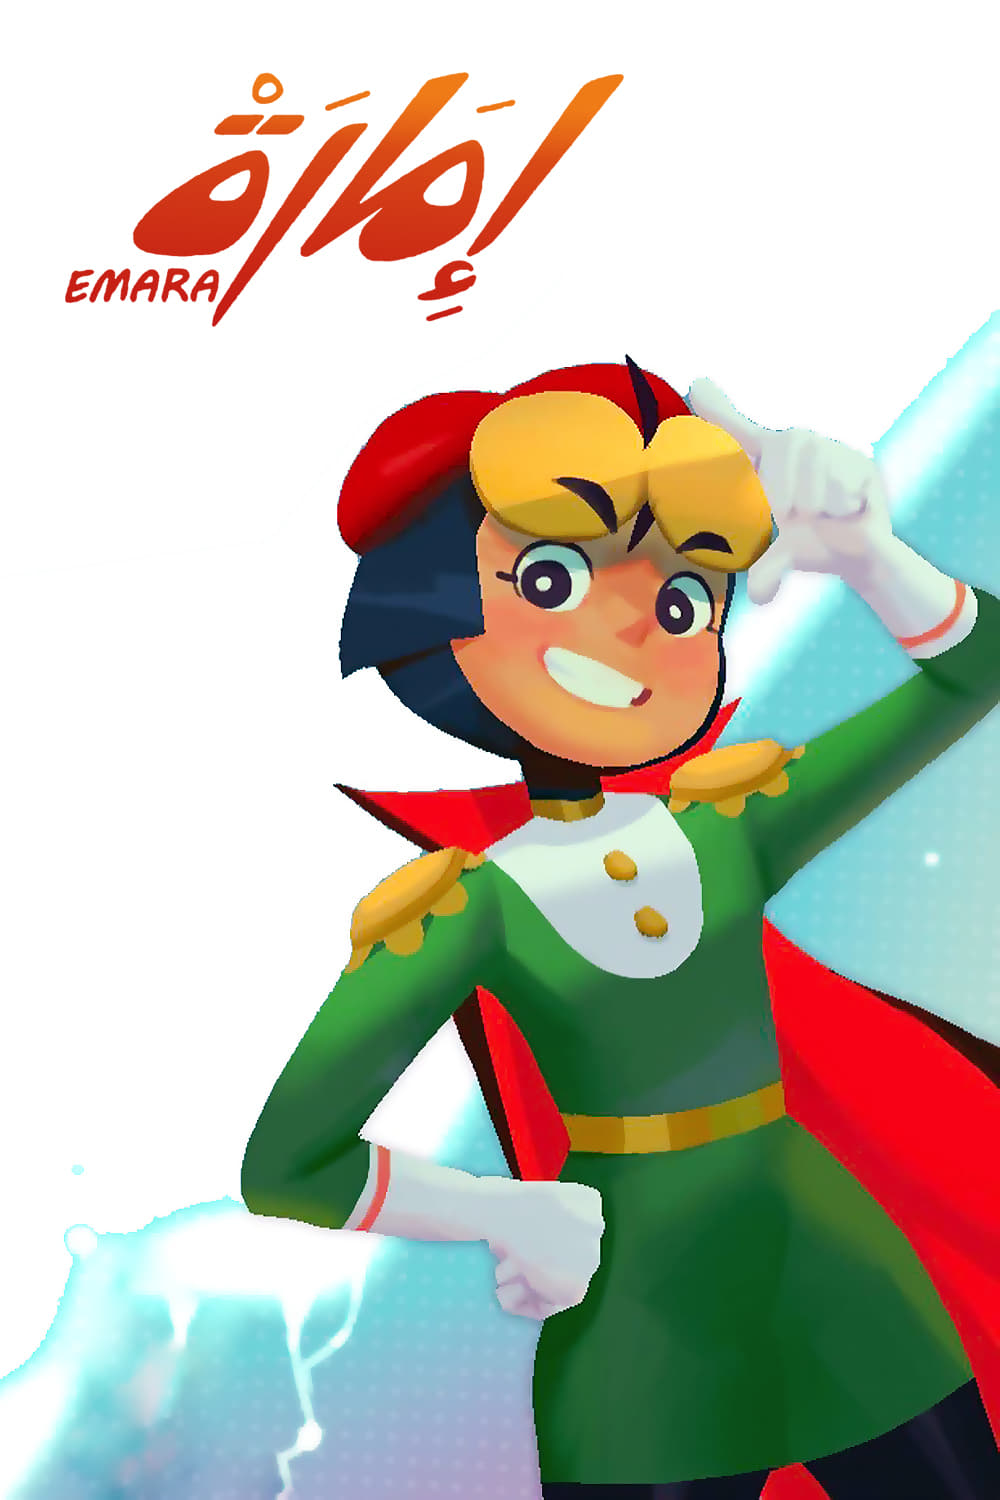 Image result for emara tv show""